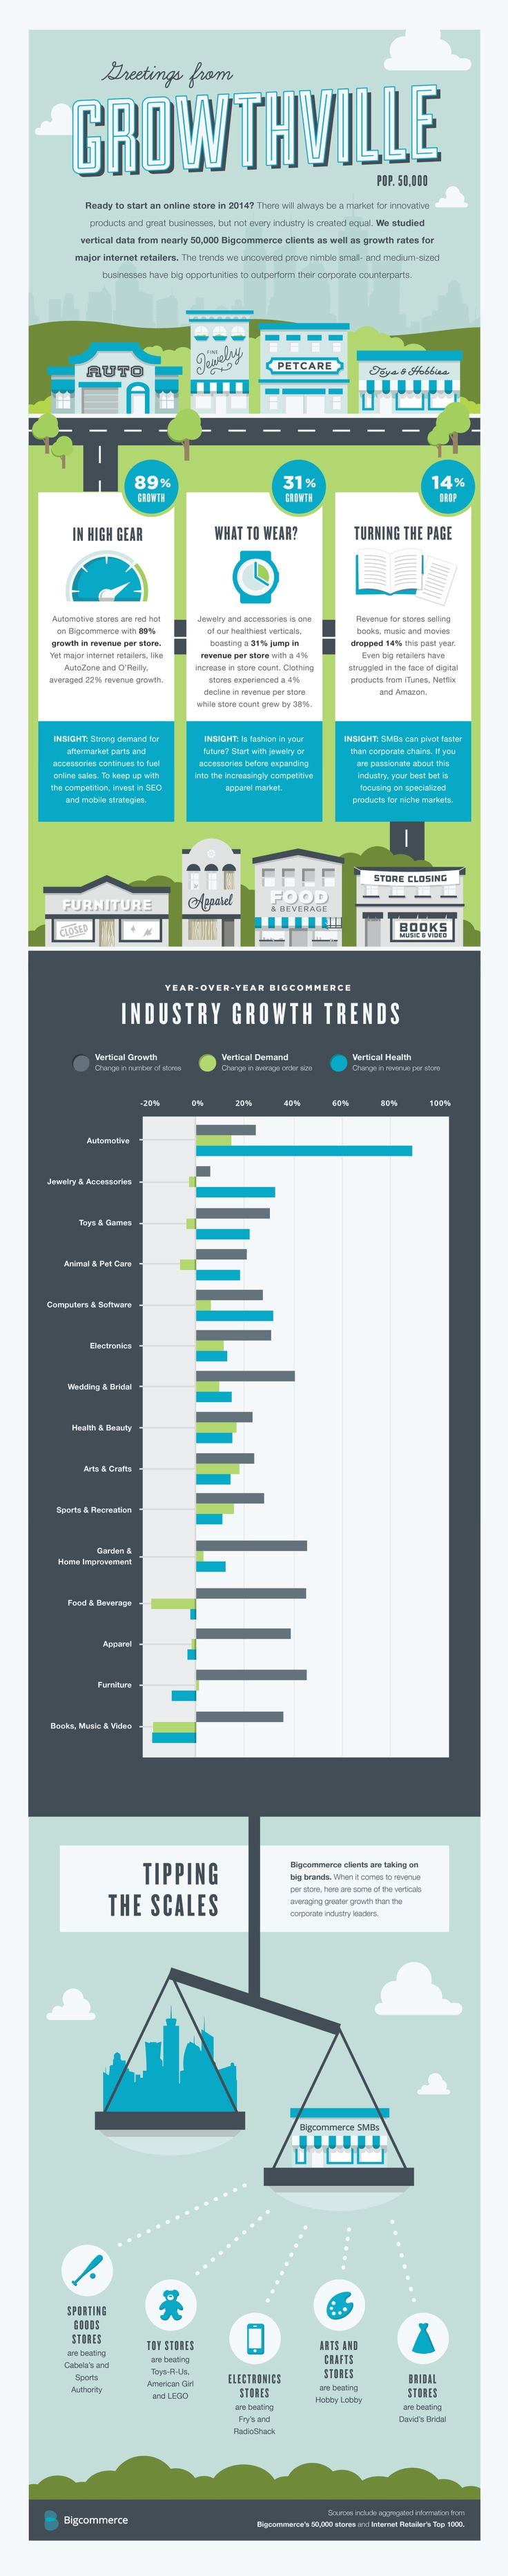 The best sectors for starting an #ecommerce business - #infographic via @Bigcommerce @VentureBeat http://venturebeat.com/2014/01/09/the-best-sectors-for-starting-an-e-commerce-business-infographic/